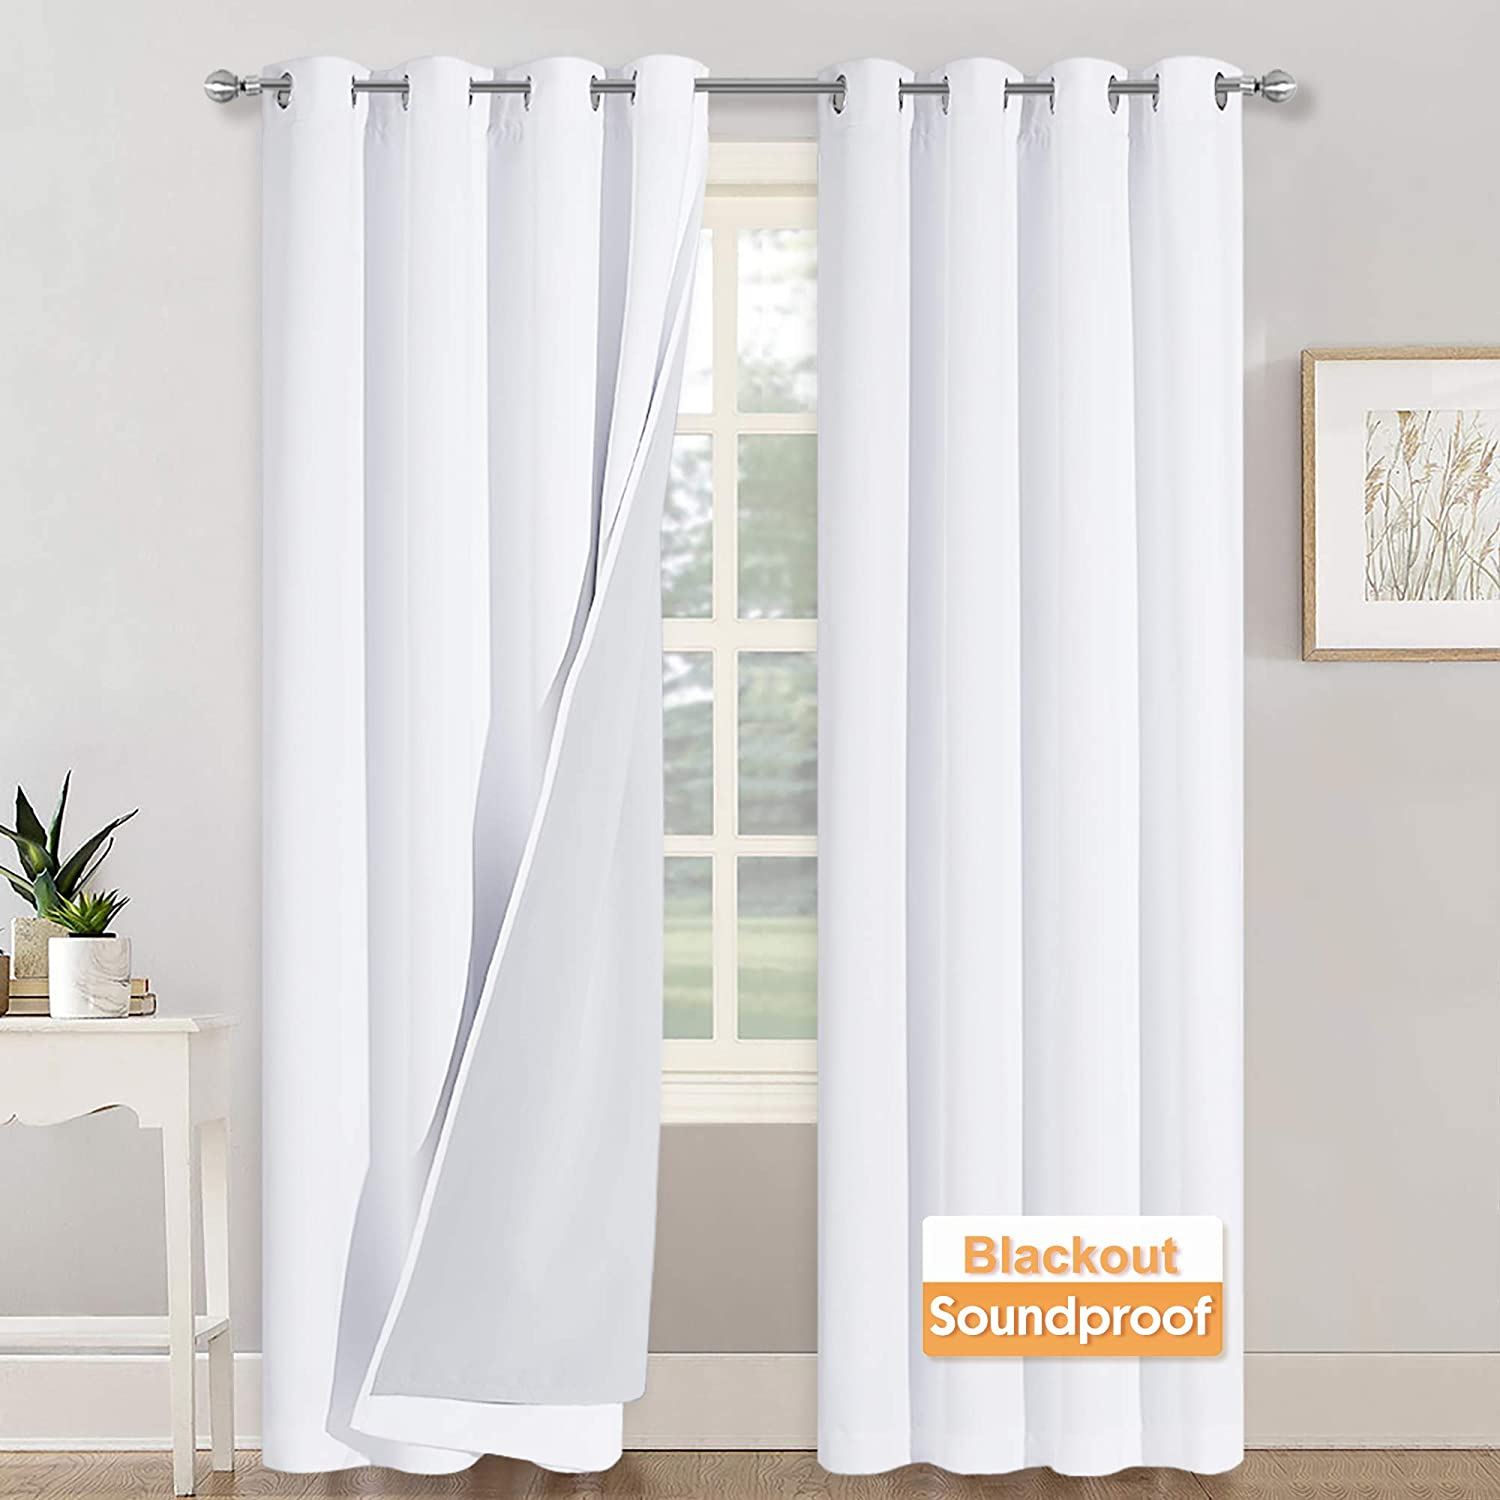 RYB HOME Soundproof Divider Curtains Blackout Curtains for Living Room Window, Inside Felf Linings Insulted Heat Cold Noise Shade Drapes for Sliding Glass...